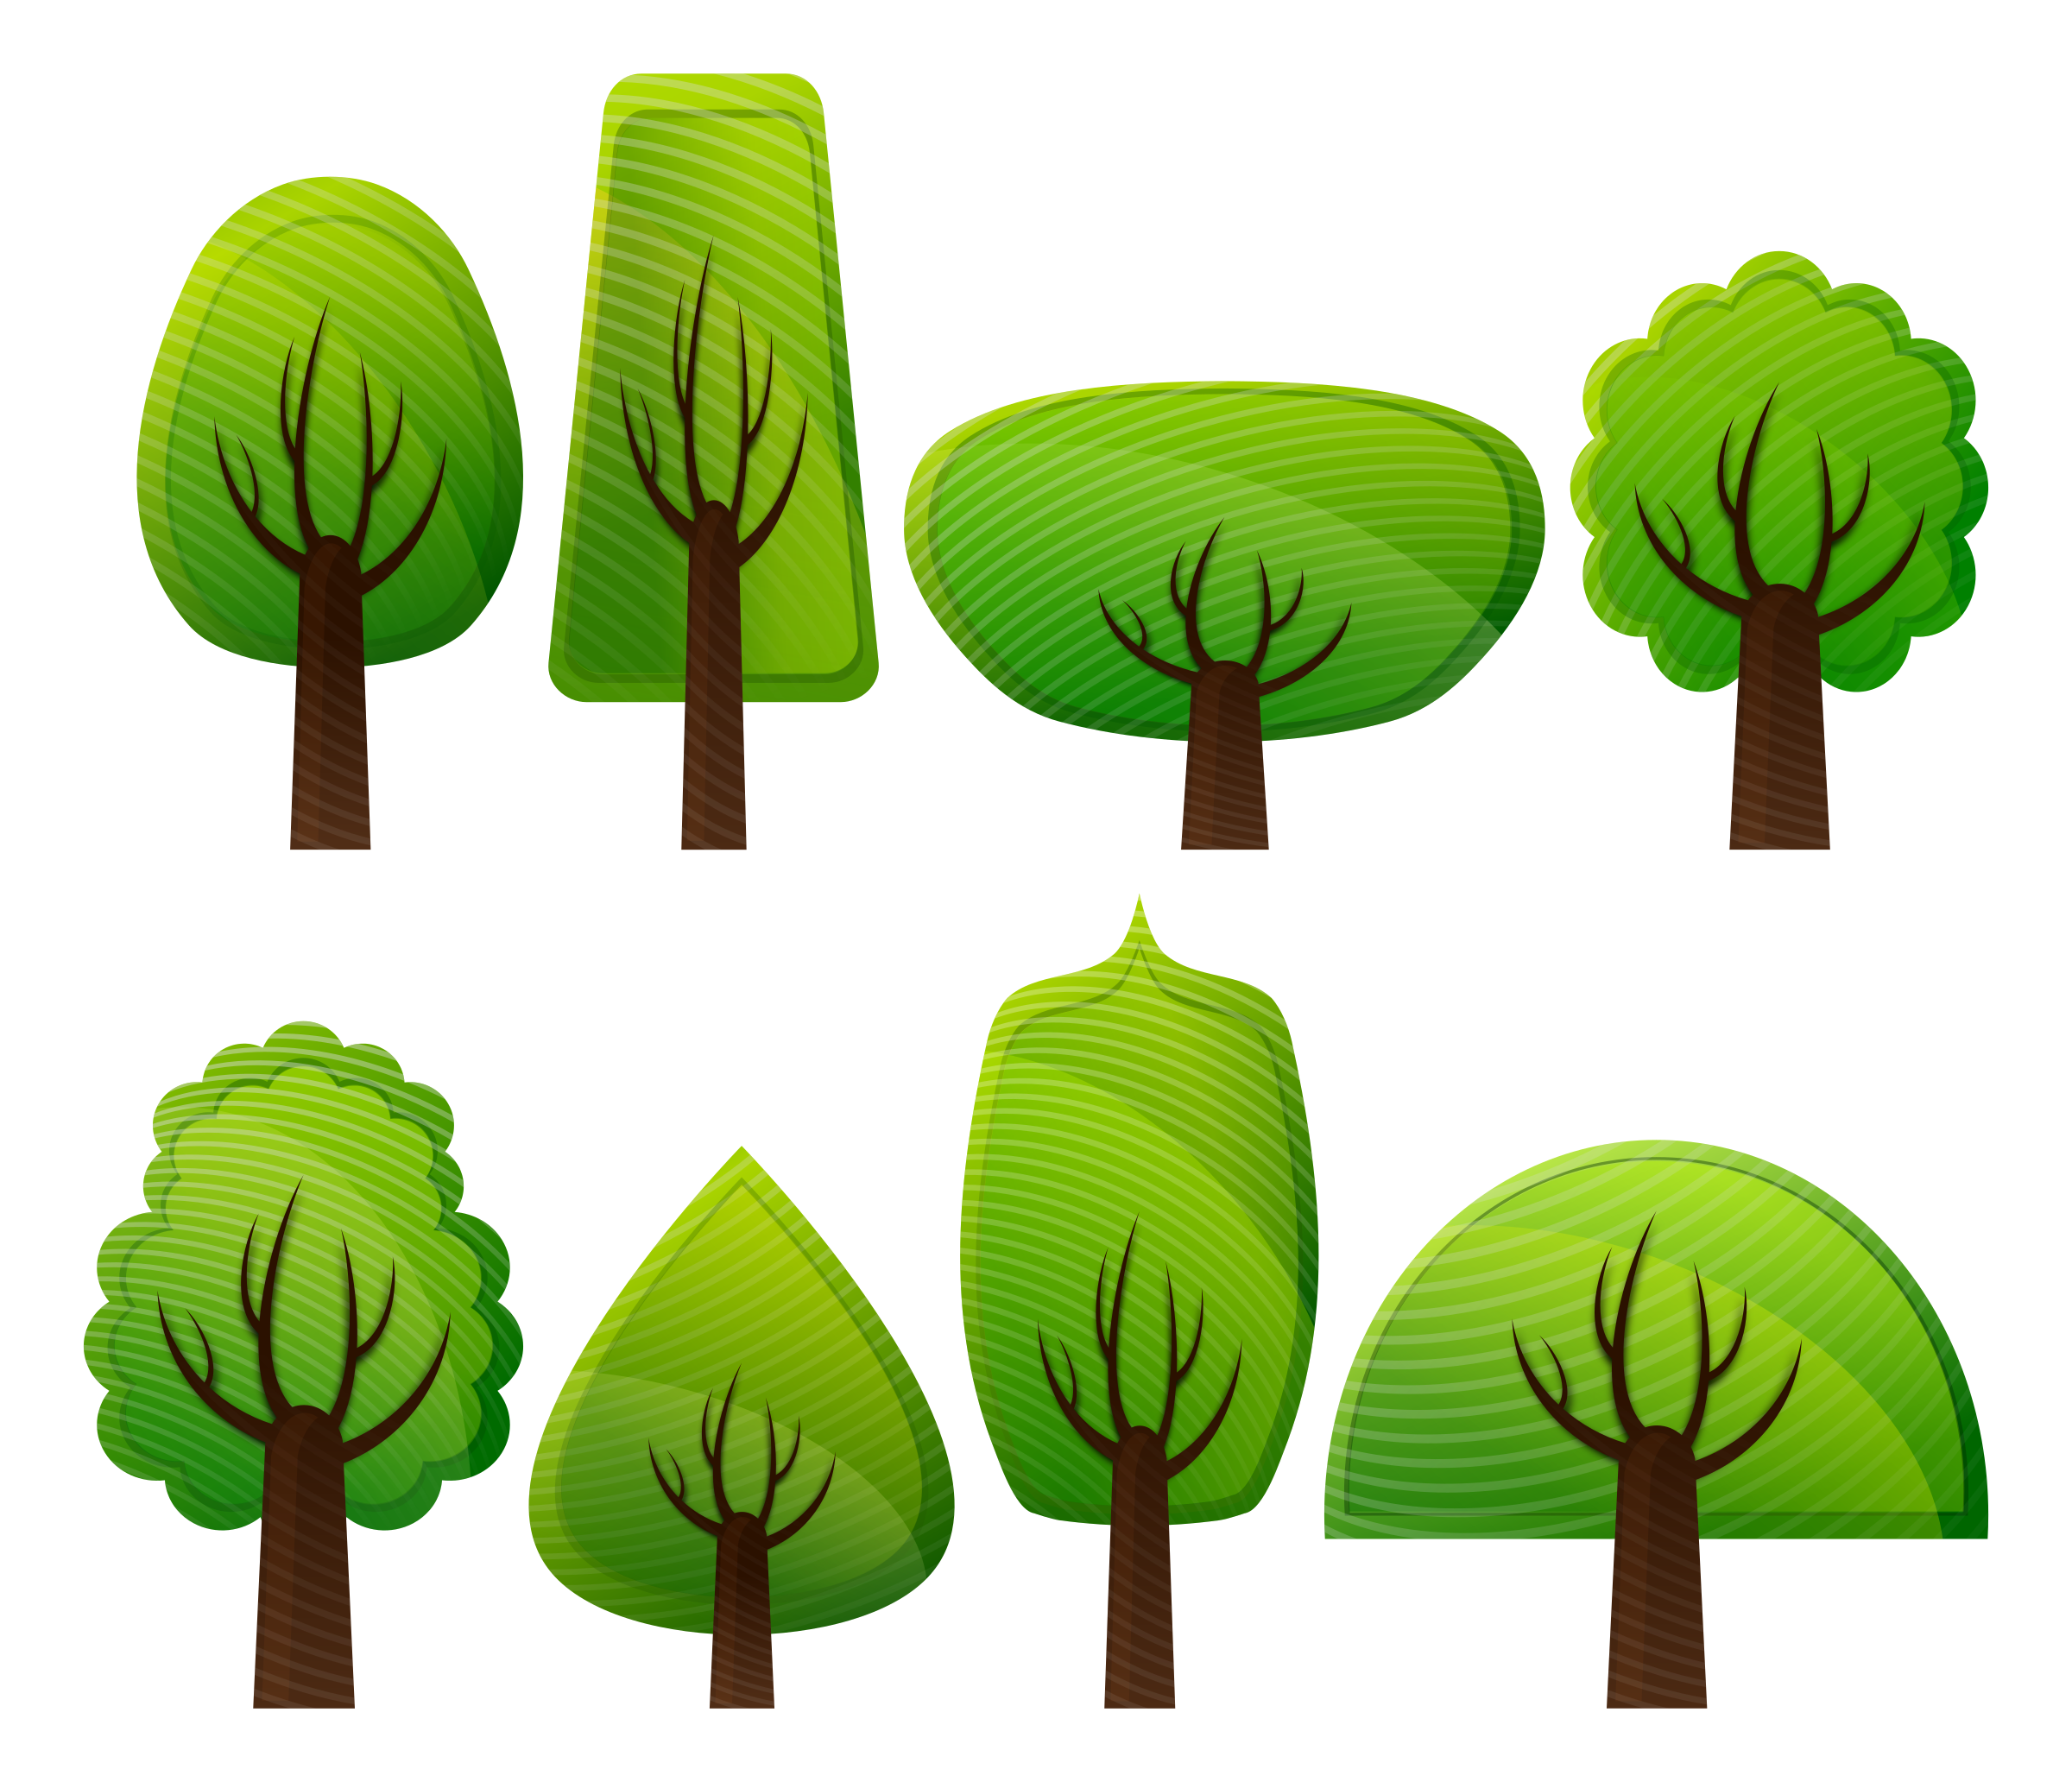 Clipart forest simple. Trees by viscious speed